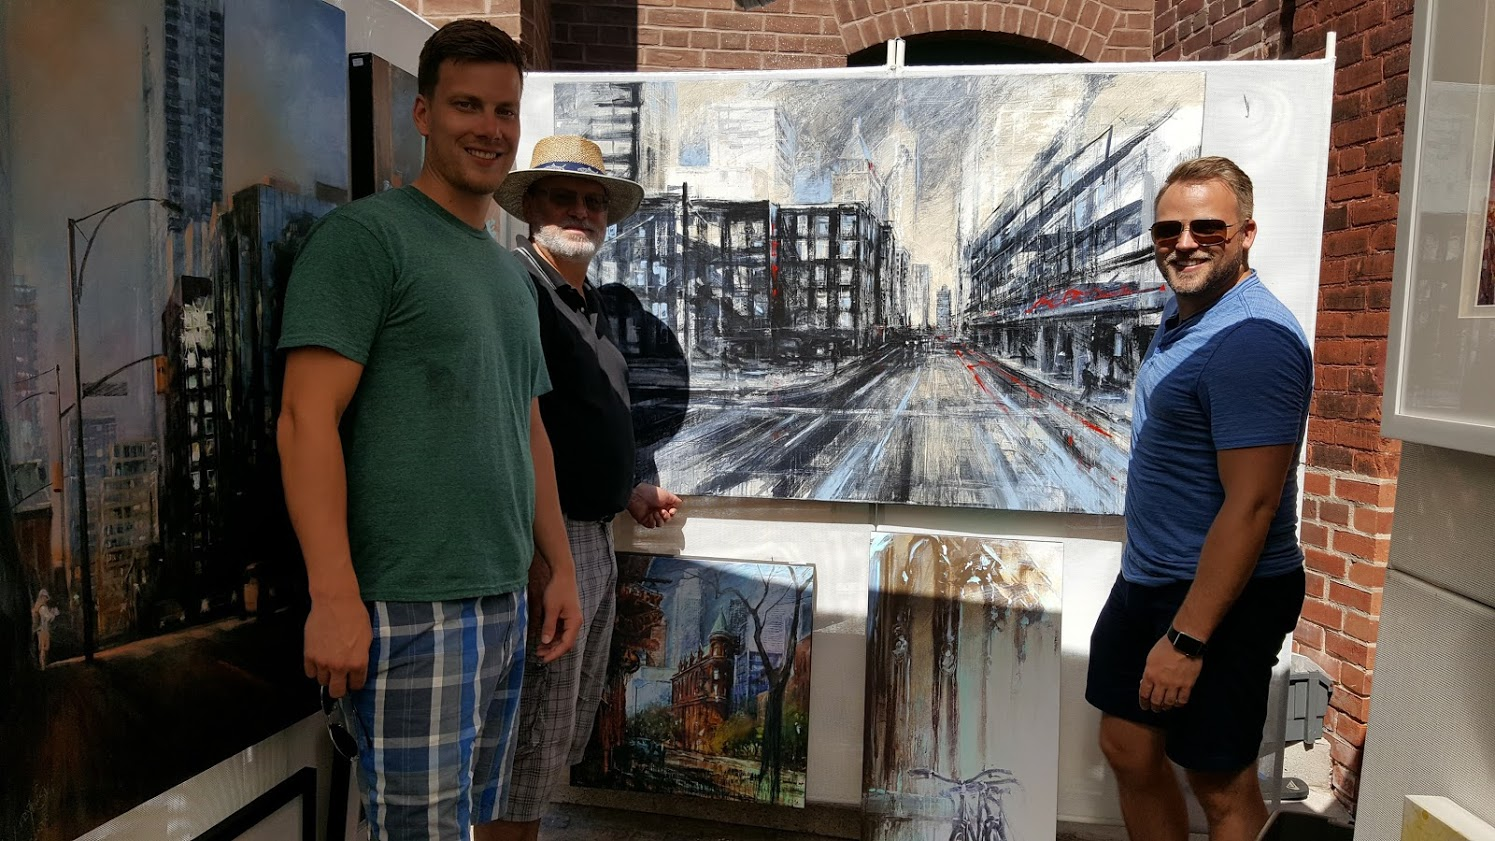 Canadian artist Alex Krajewski at an ArtFest at Destillery in Toronto Ontario with happy customers